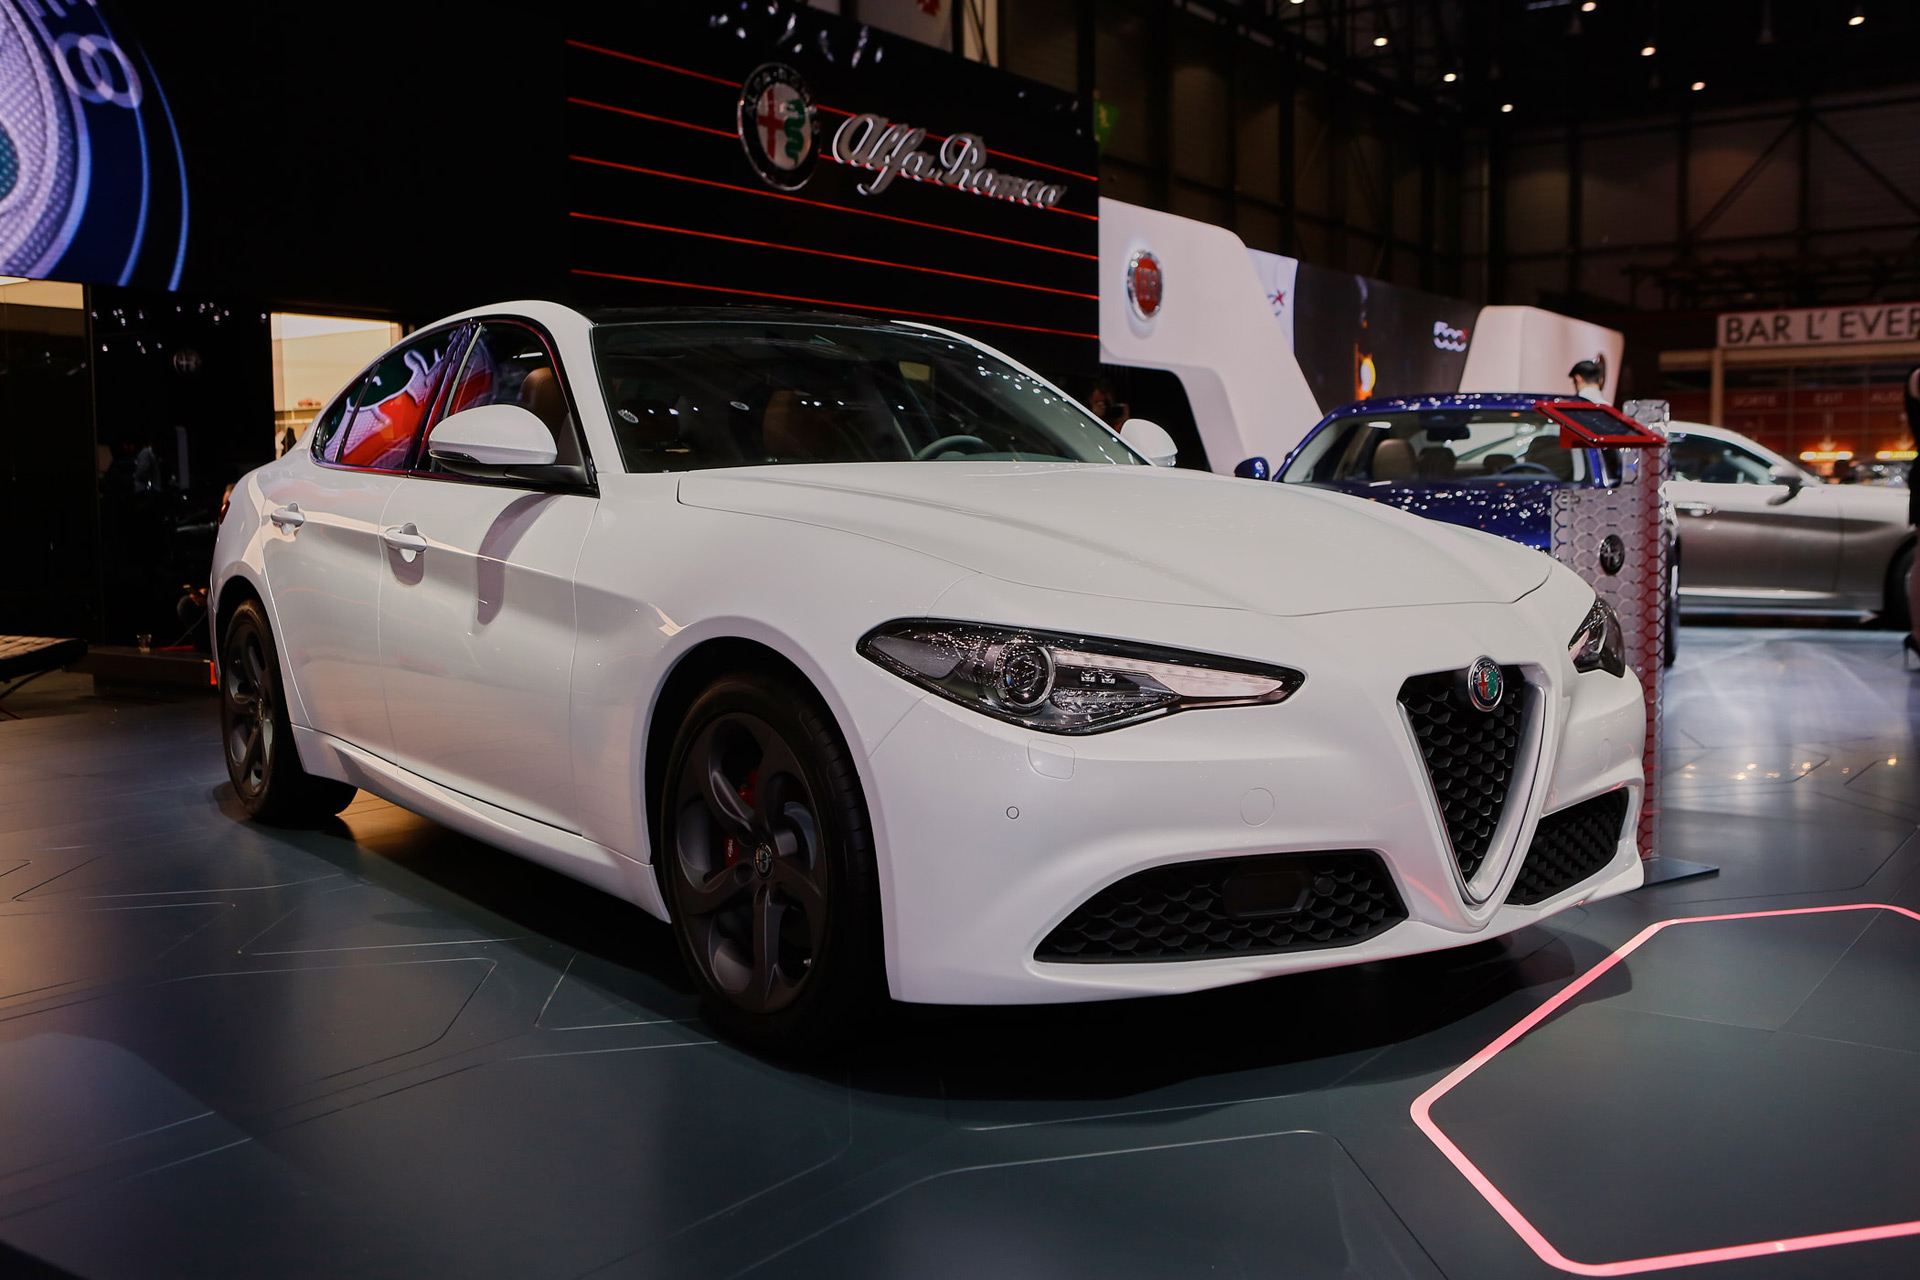 2017 Alfa Romeo Giulia S Regular Trim Levels Revealed In Geneva Live Photos